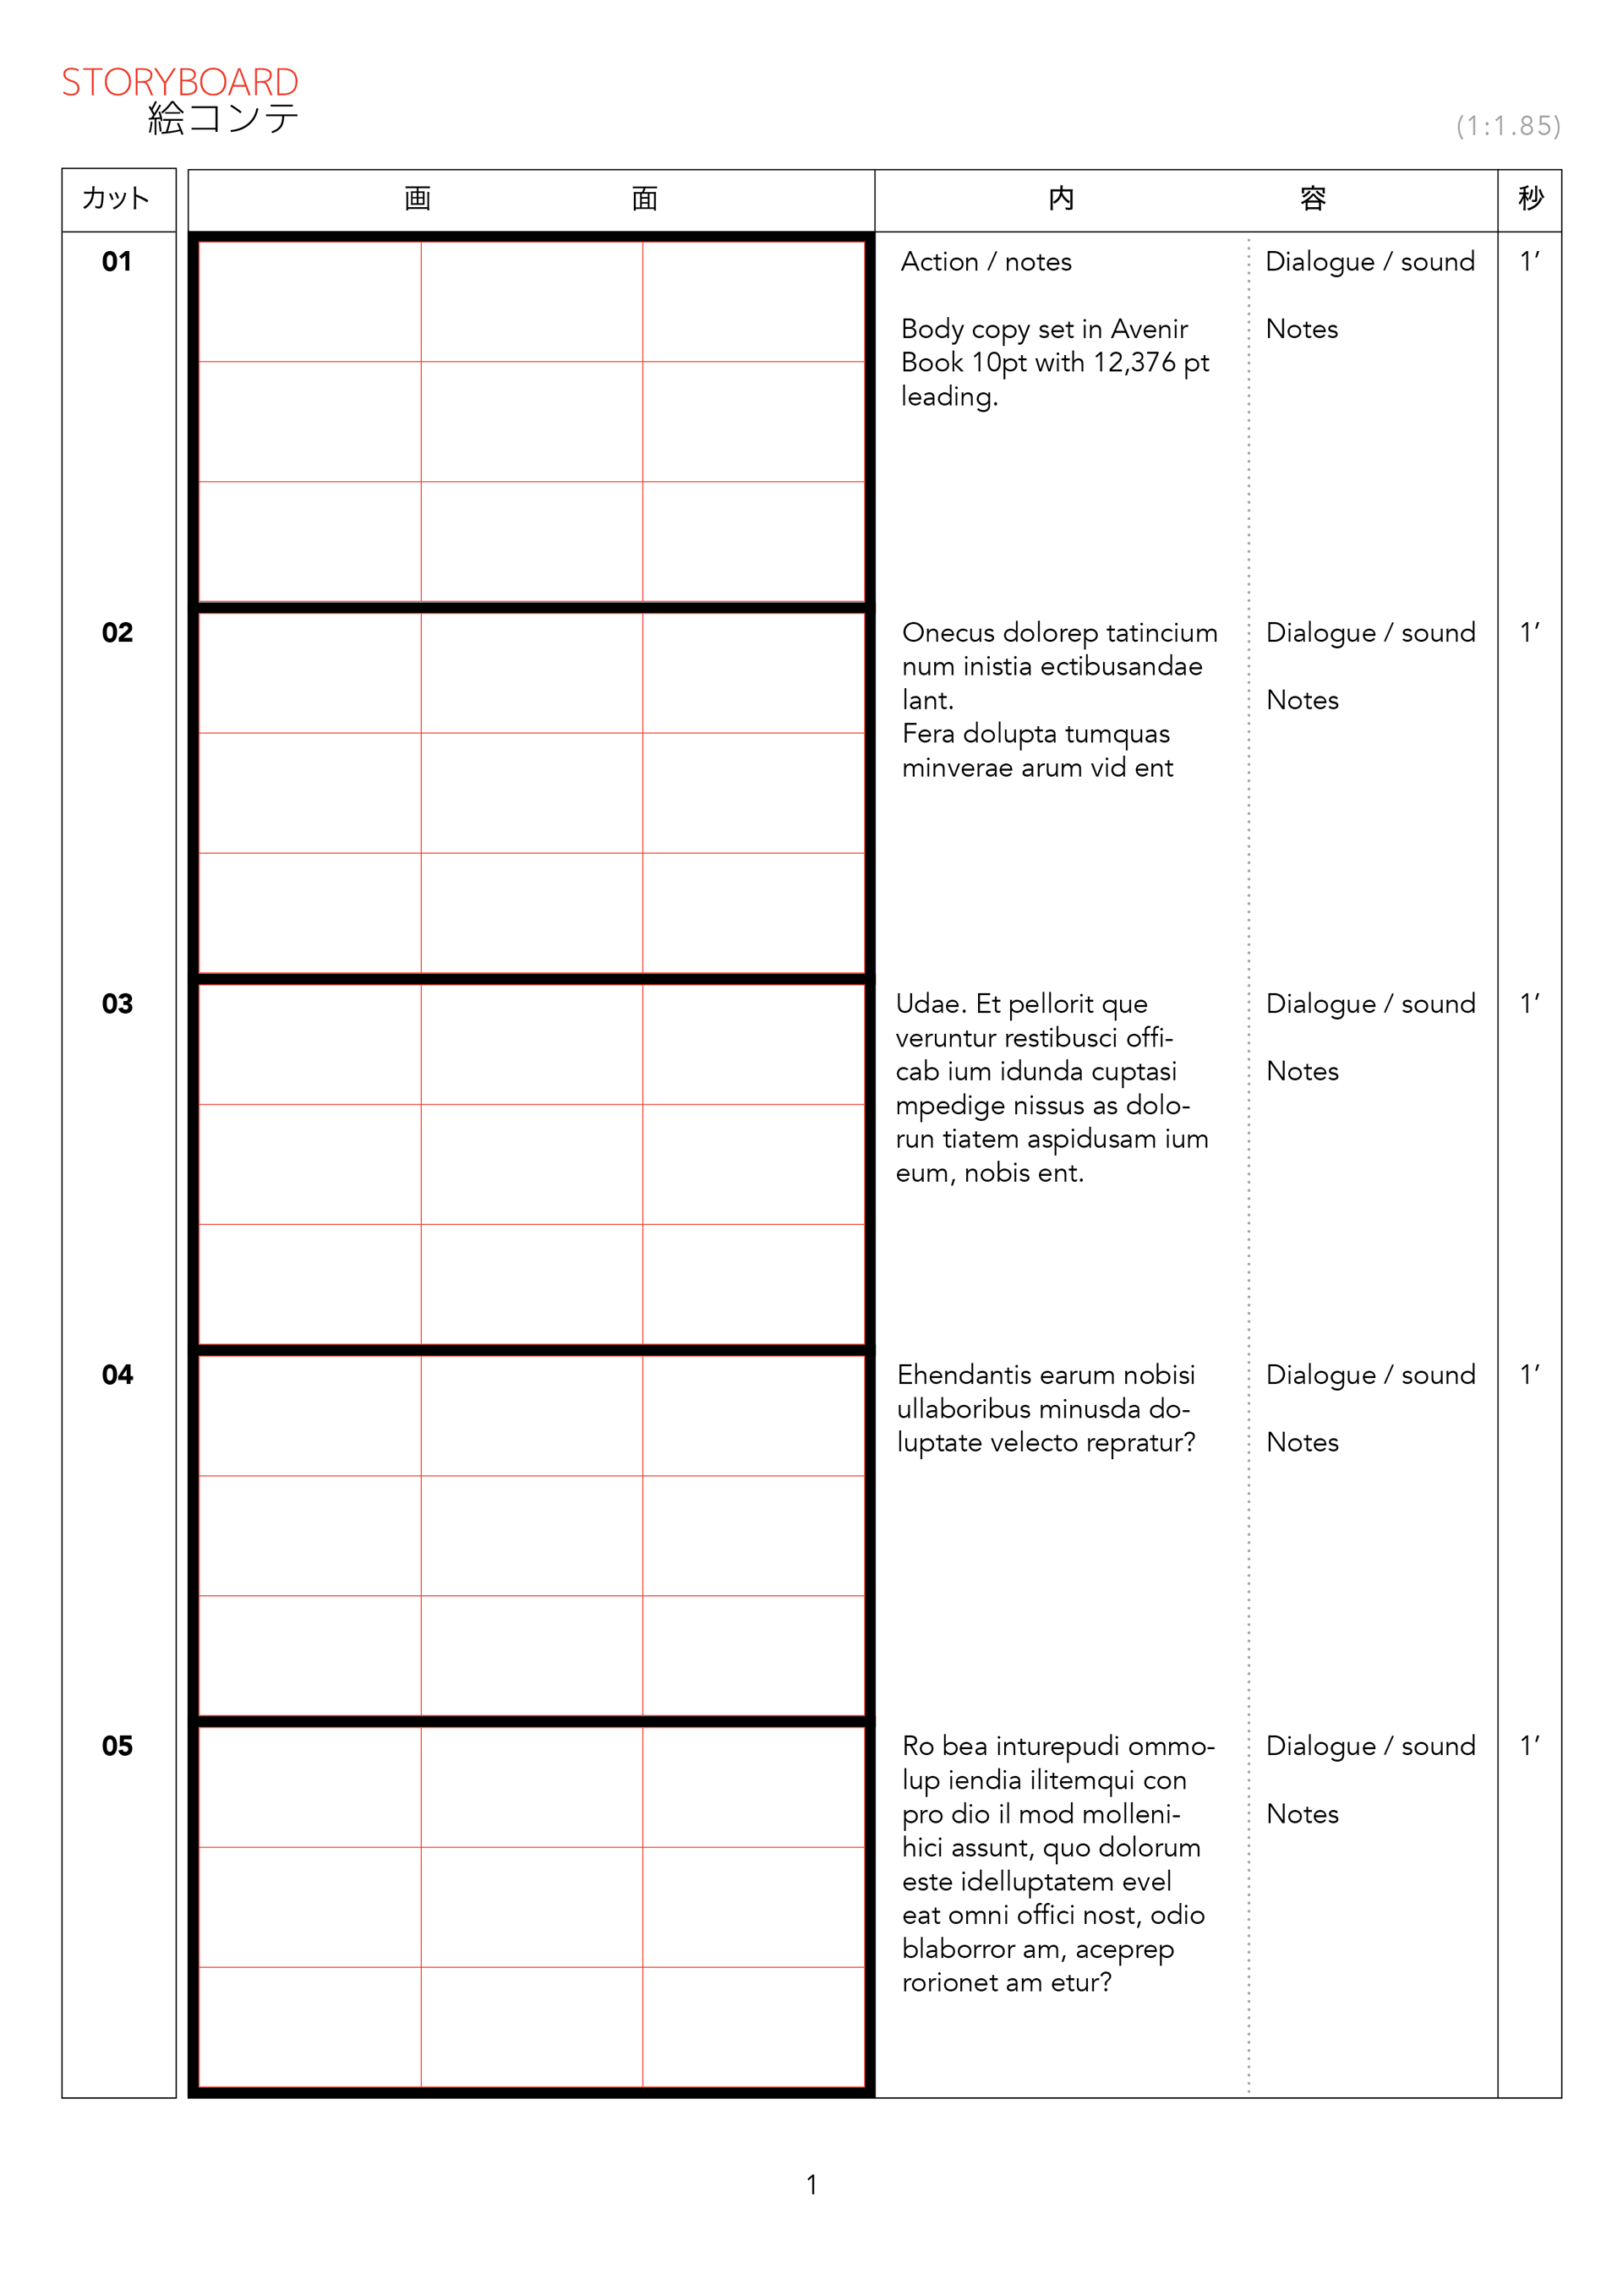 InDesign Japanese anime storyboard template for 1.85:1 aspect ratio